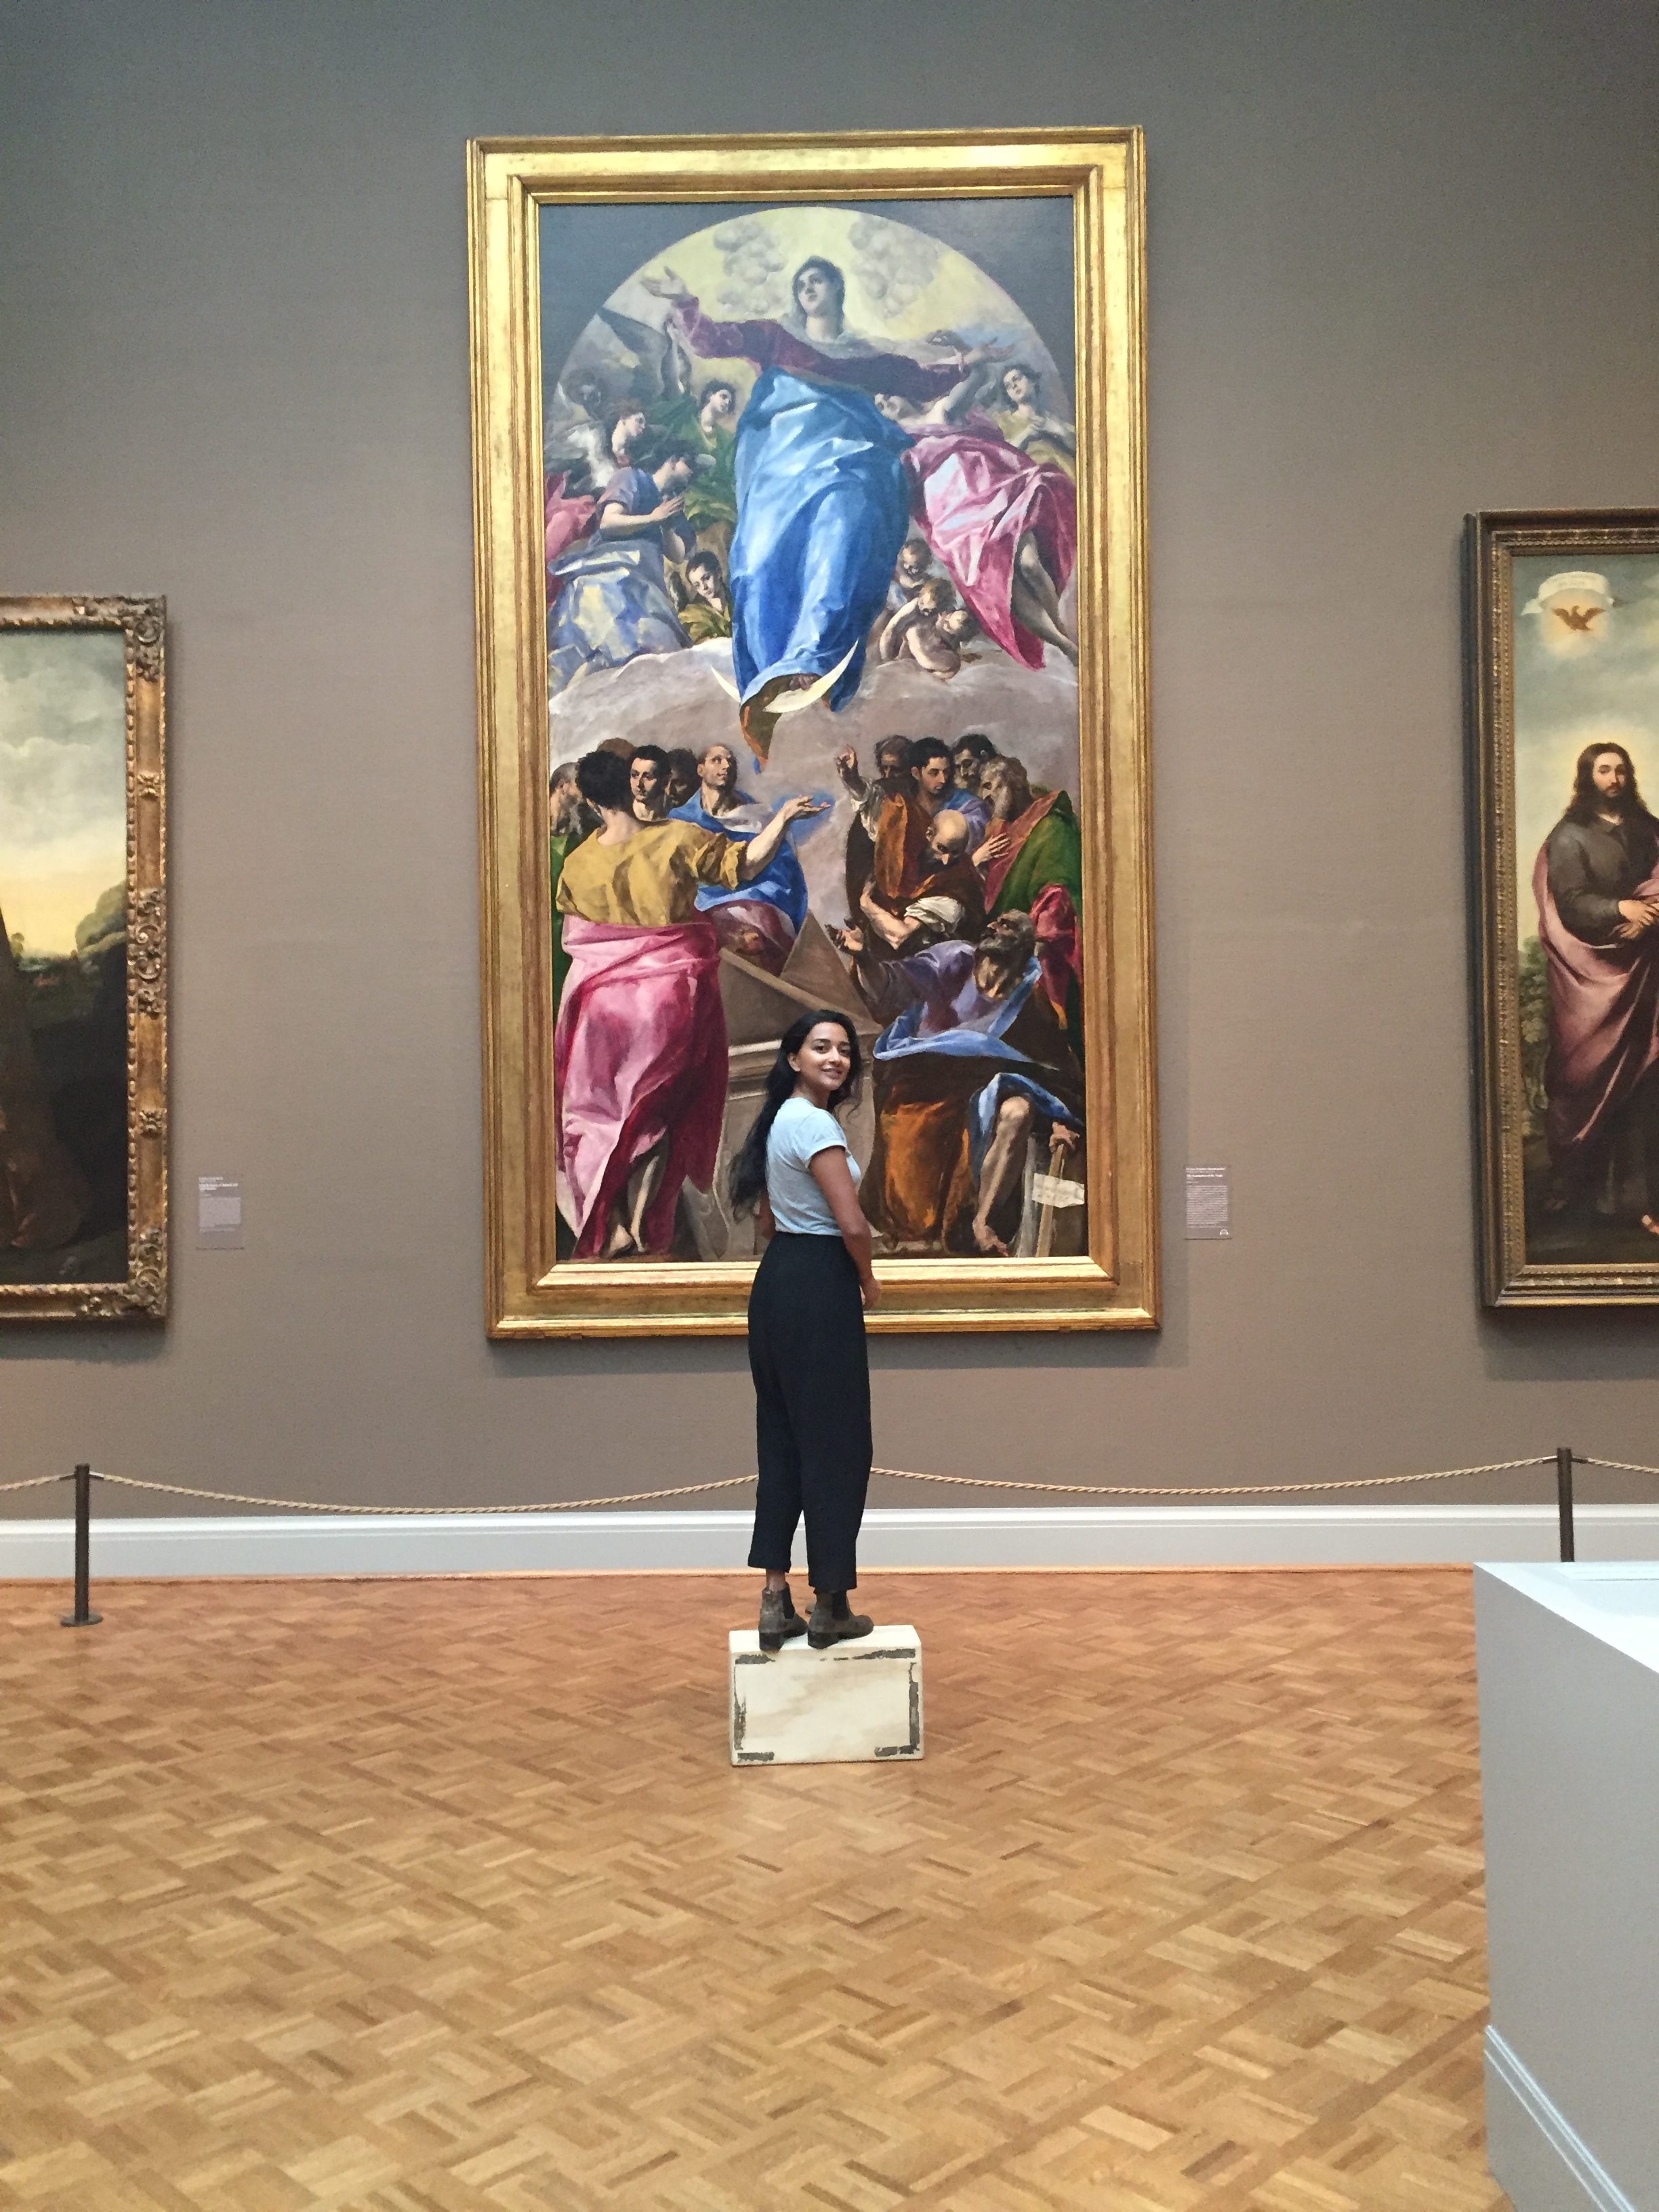 Tara, standing on a prop, to get a larger-than-life perspective in front of the painting.